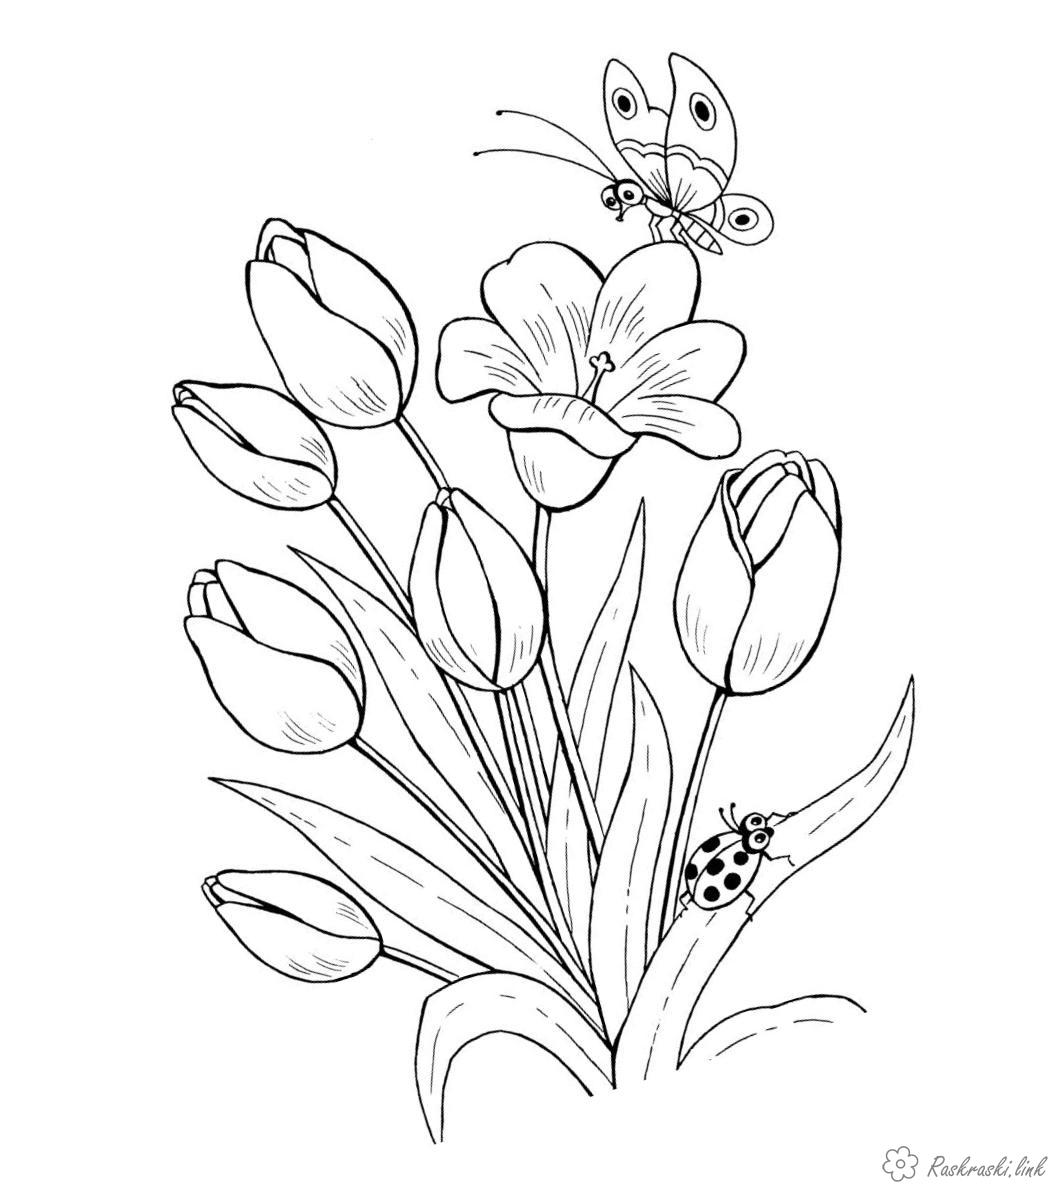 Coloring tulips Children coloring pages plants, flowers, tulips